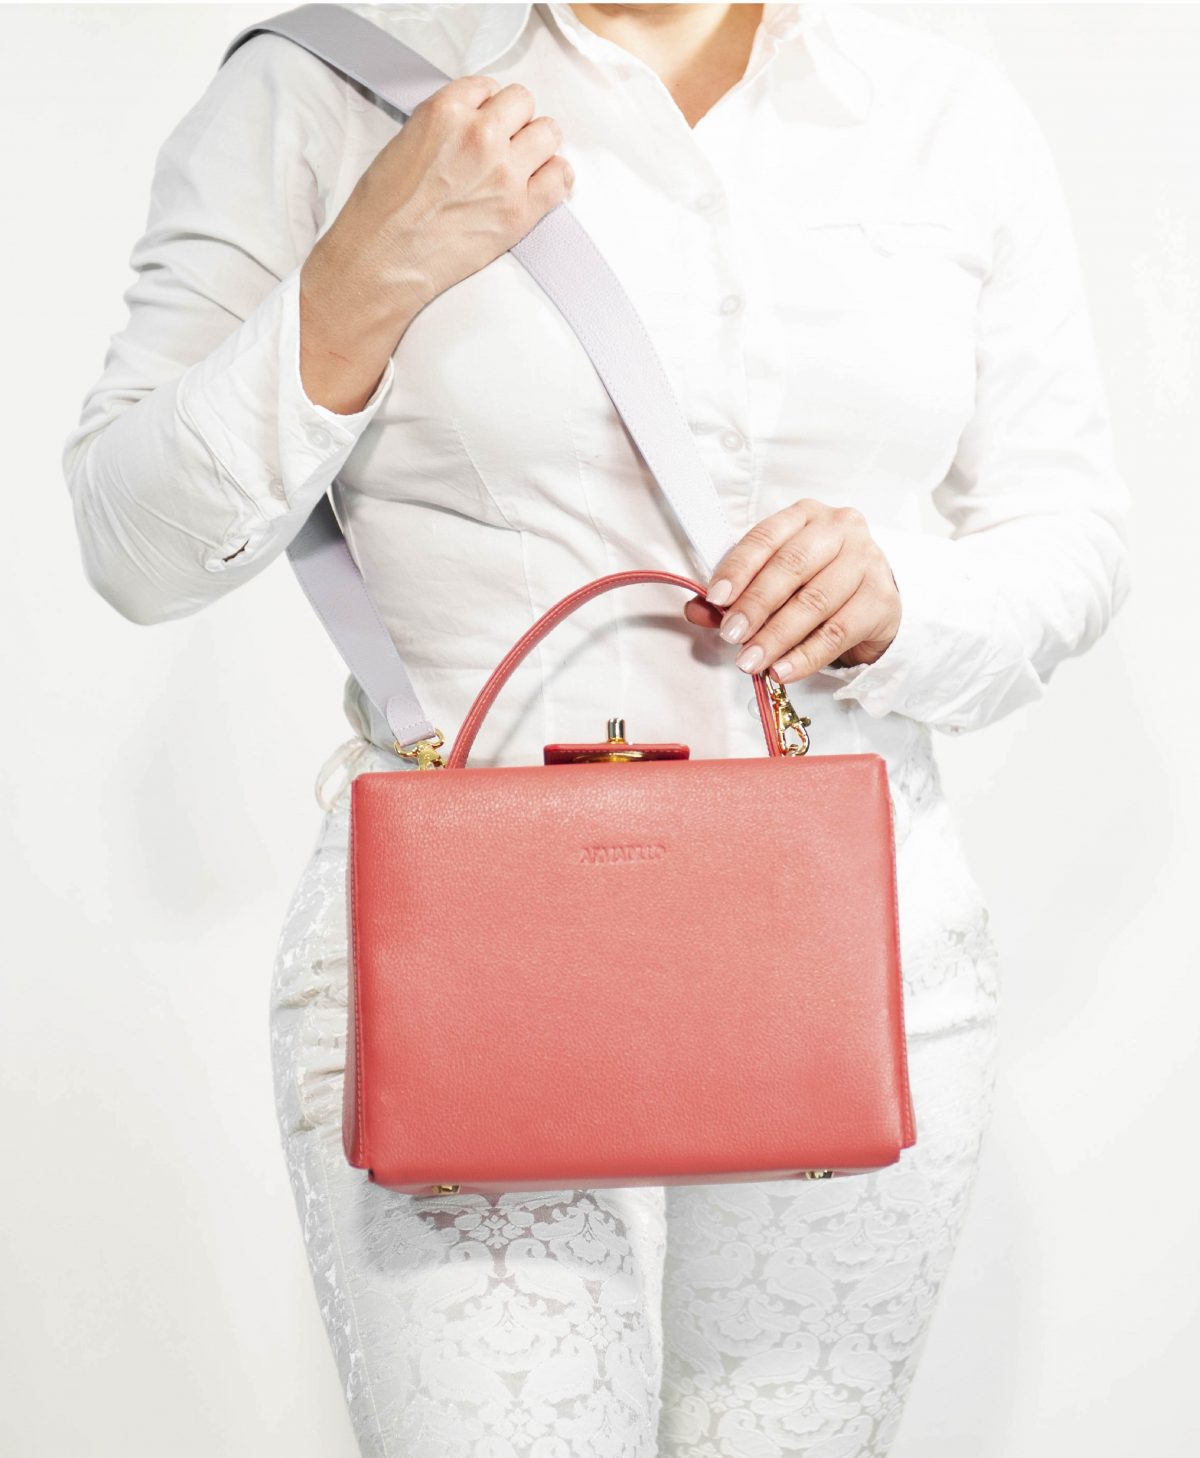 armadillo-leather-handbags-totes-wallets-clutches-backpack-small-leather-goods-accessories-office-travel-gifts-in-canada-img-slide-handbag-kate-spade-purse-boxbag-box-bag-coral-lillac-03